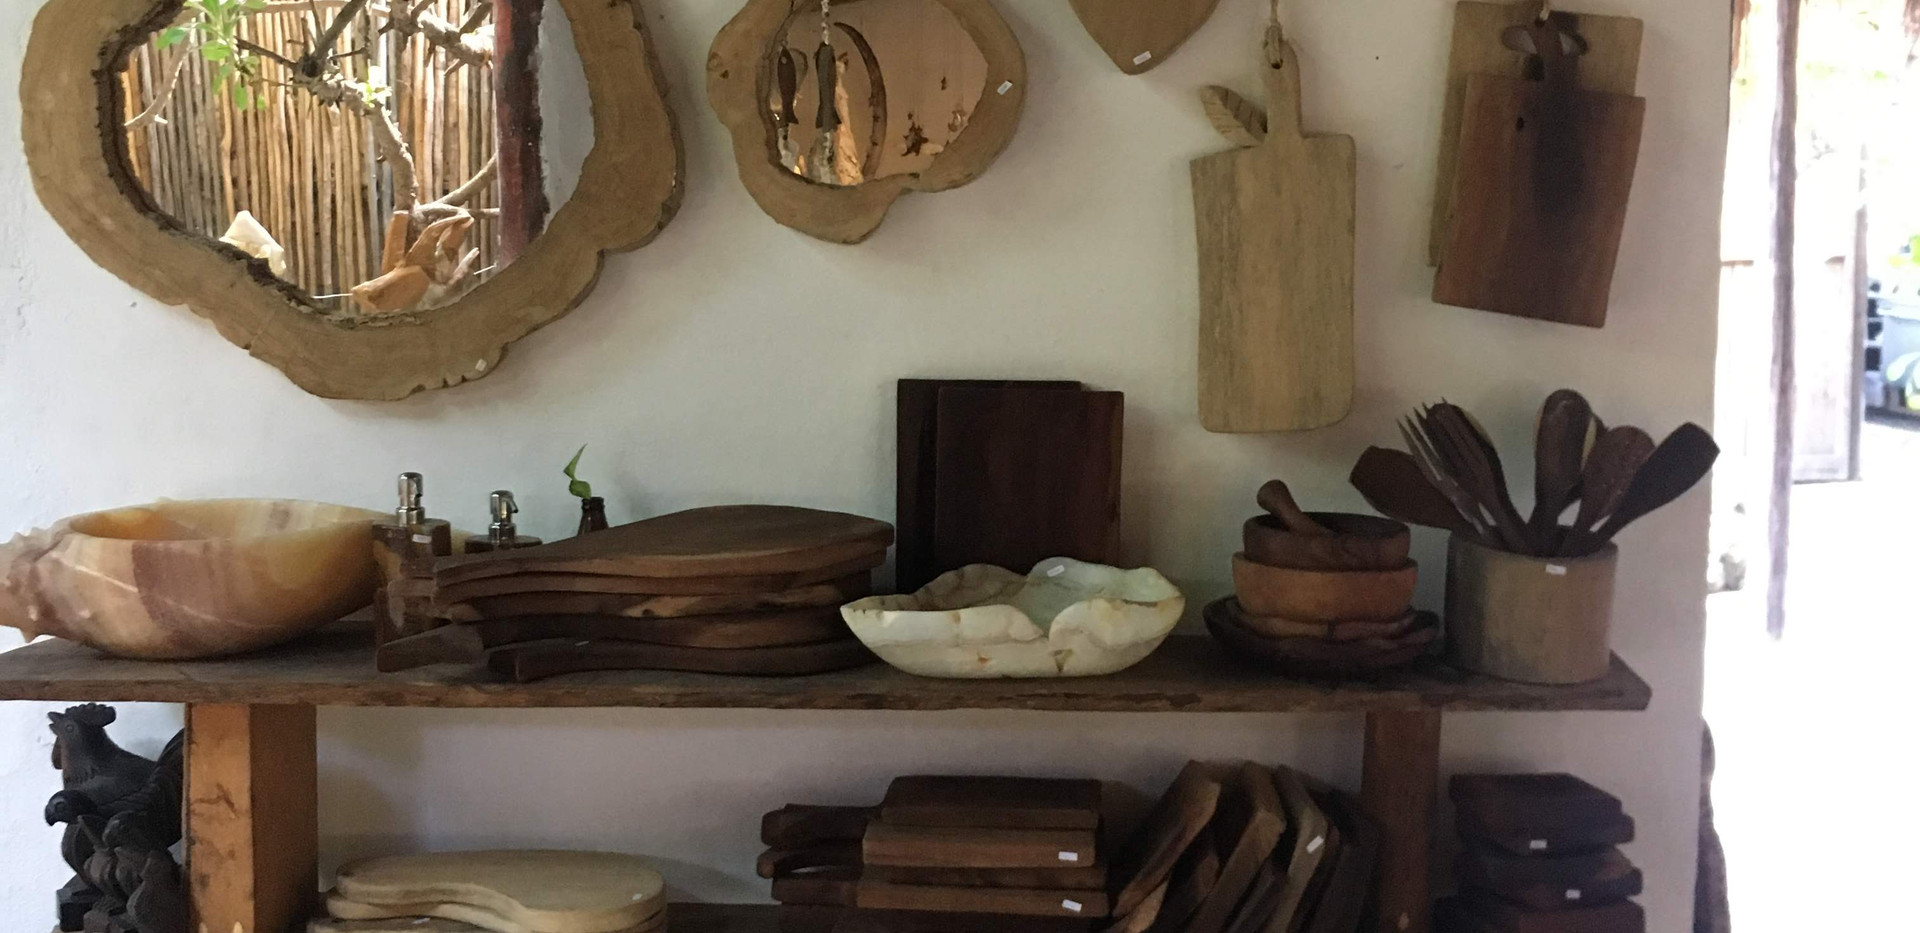 wooden art from Madera art gallery Isla Mujeres Mexico